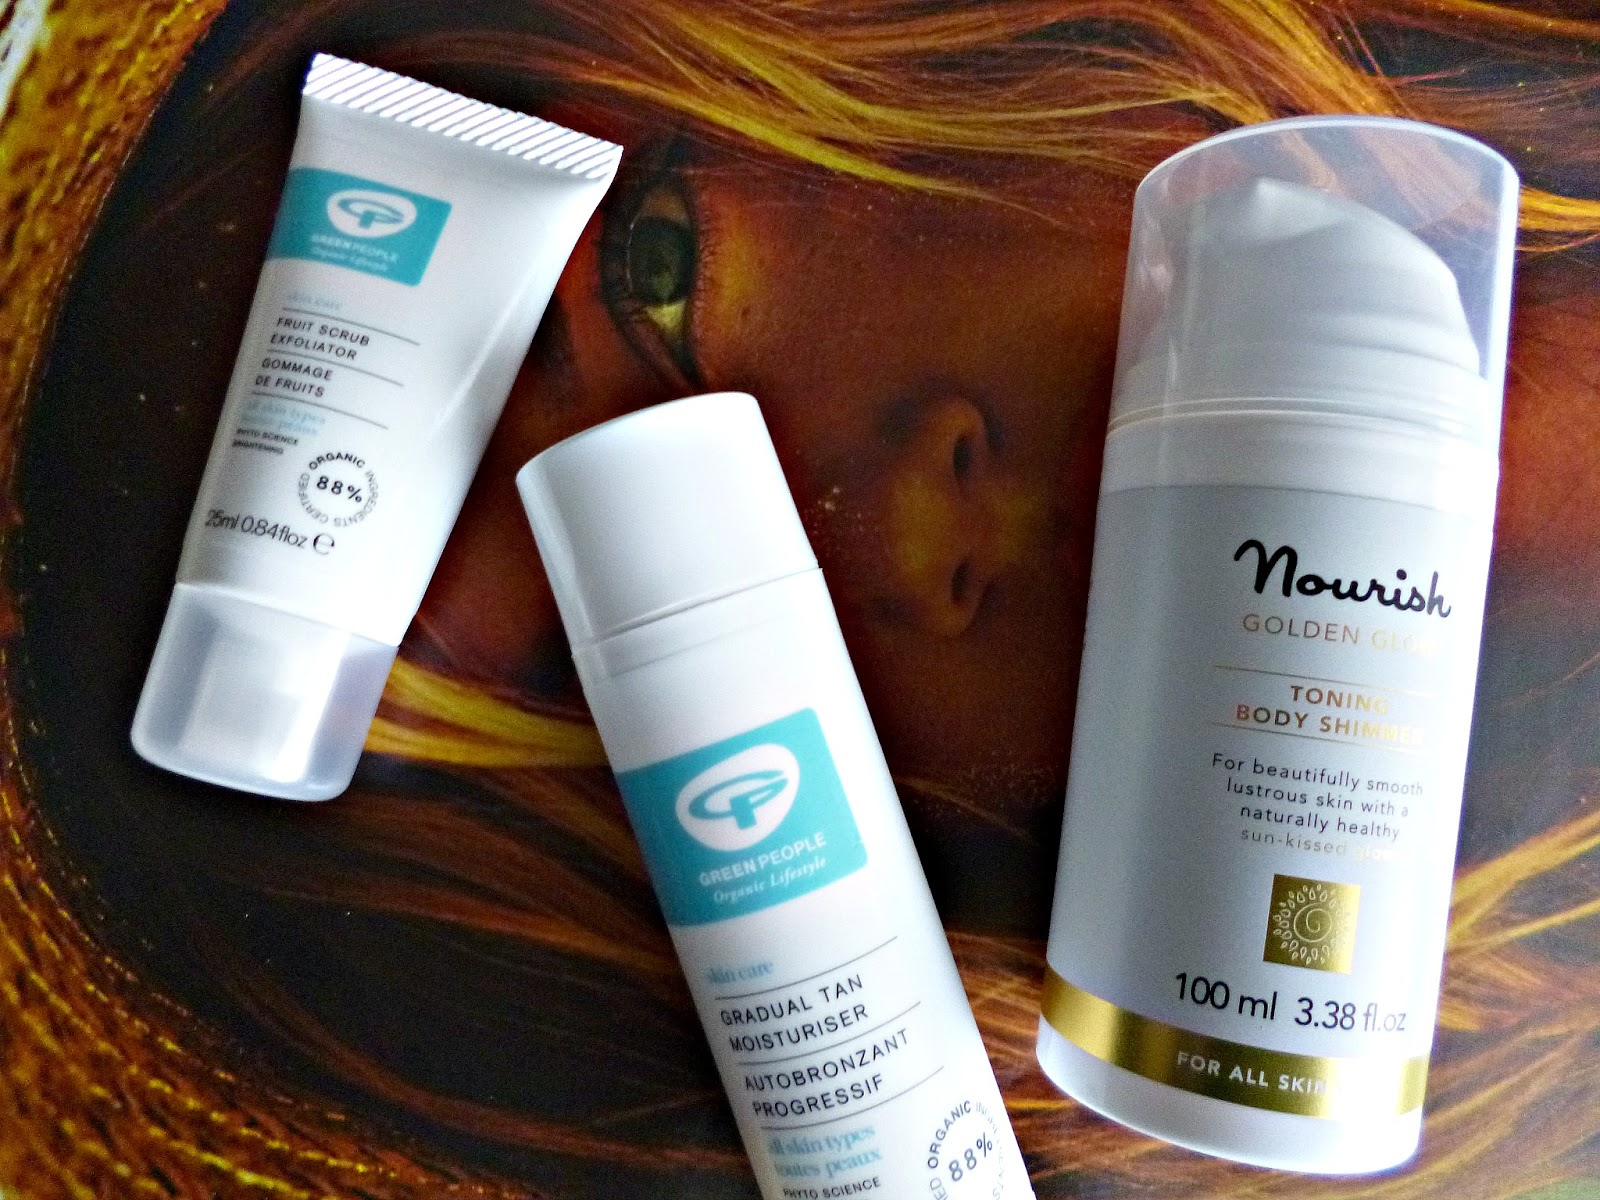 Keep your summer glow with Nourish and Green People